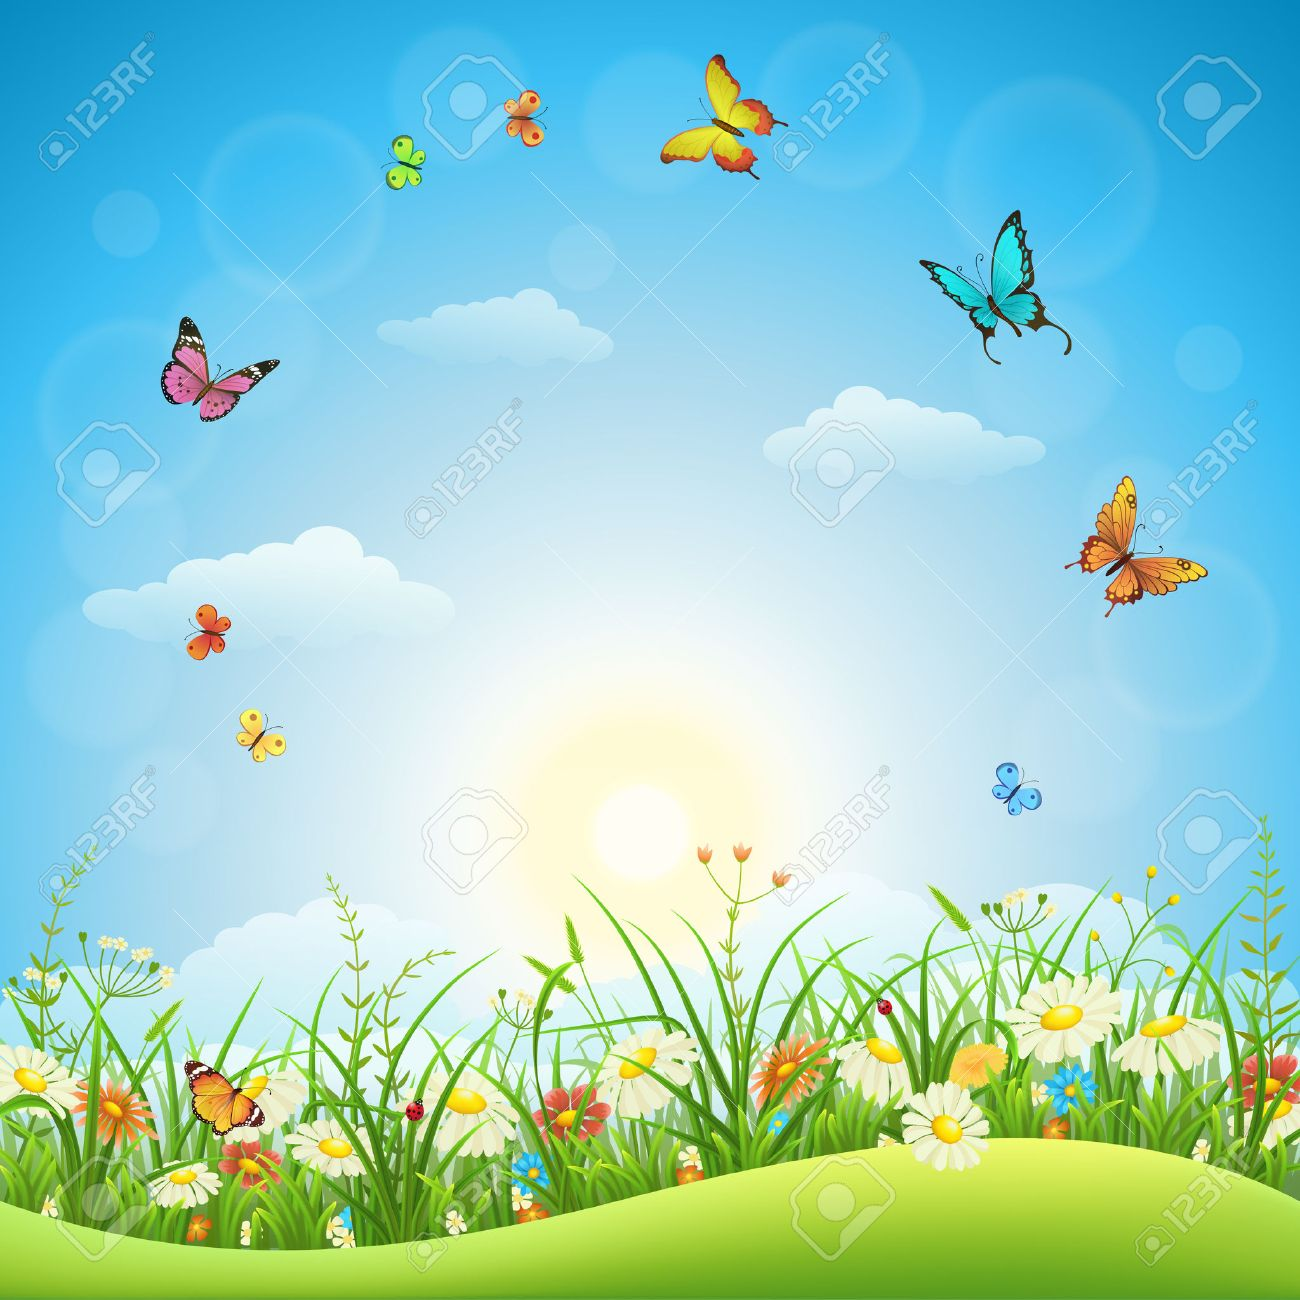 Spring or summer landscape with green grass, flowers and butterflies - 53040415